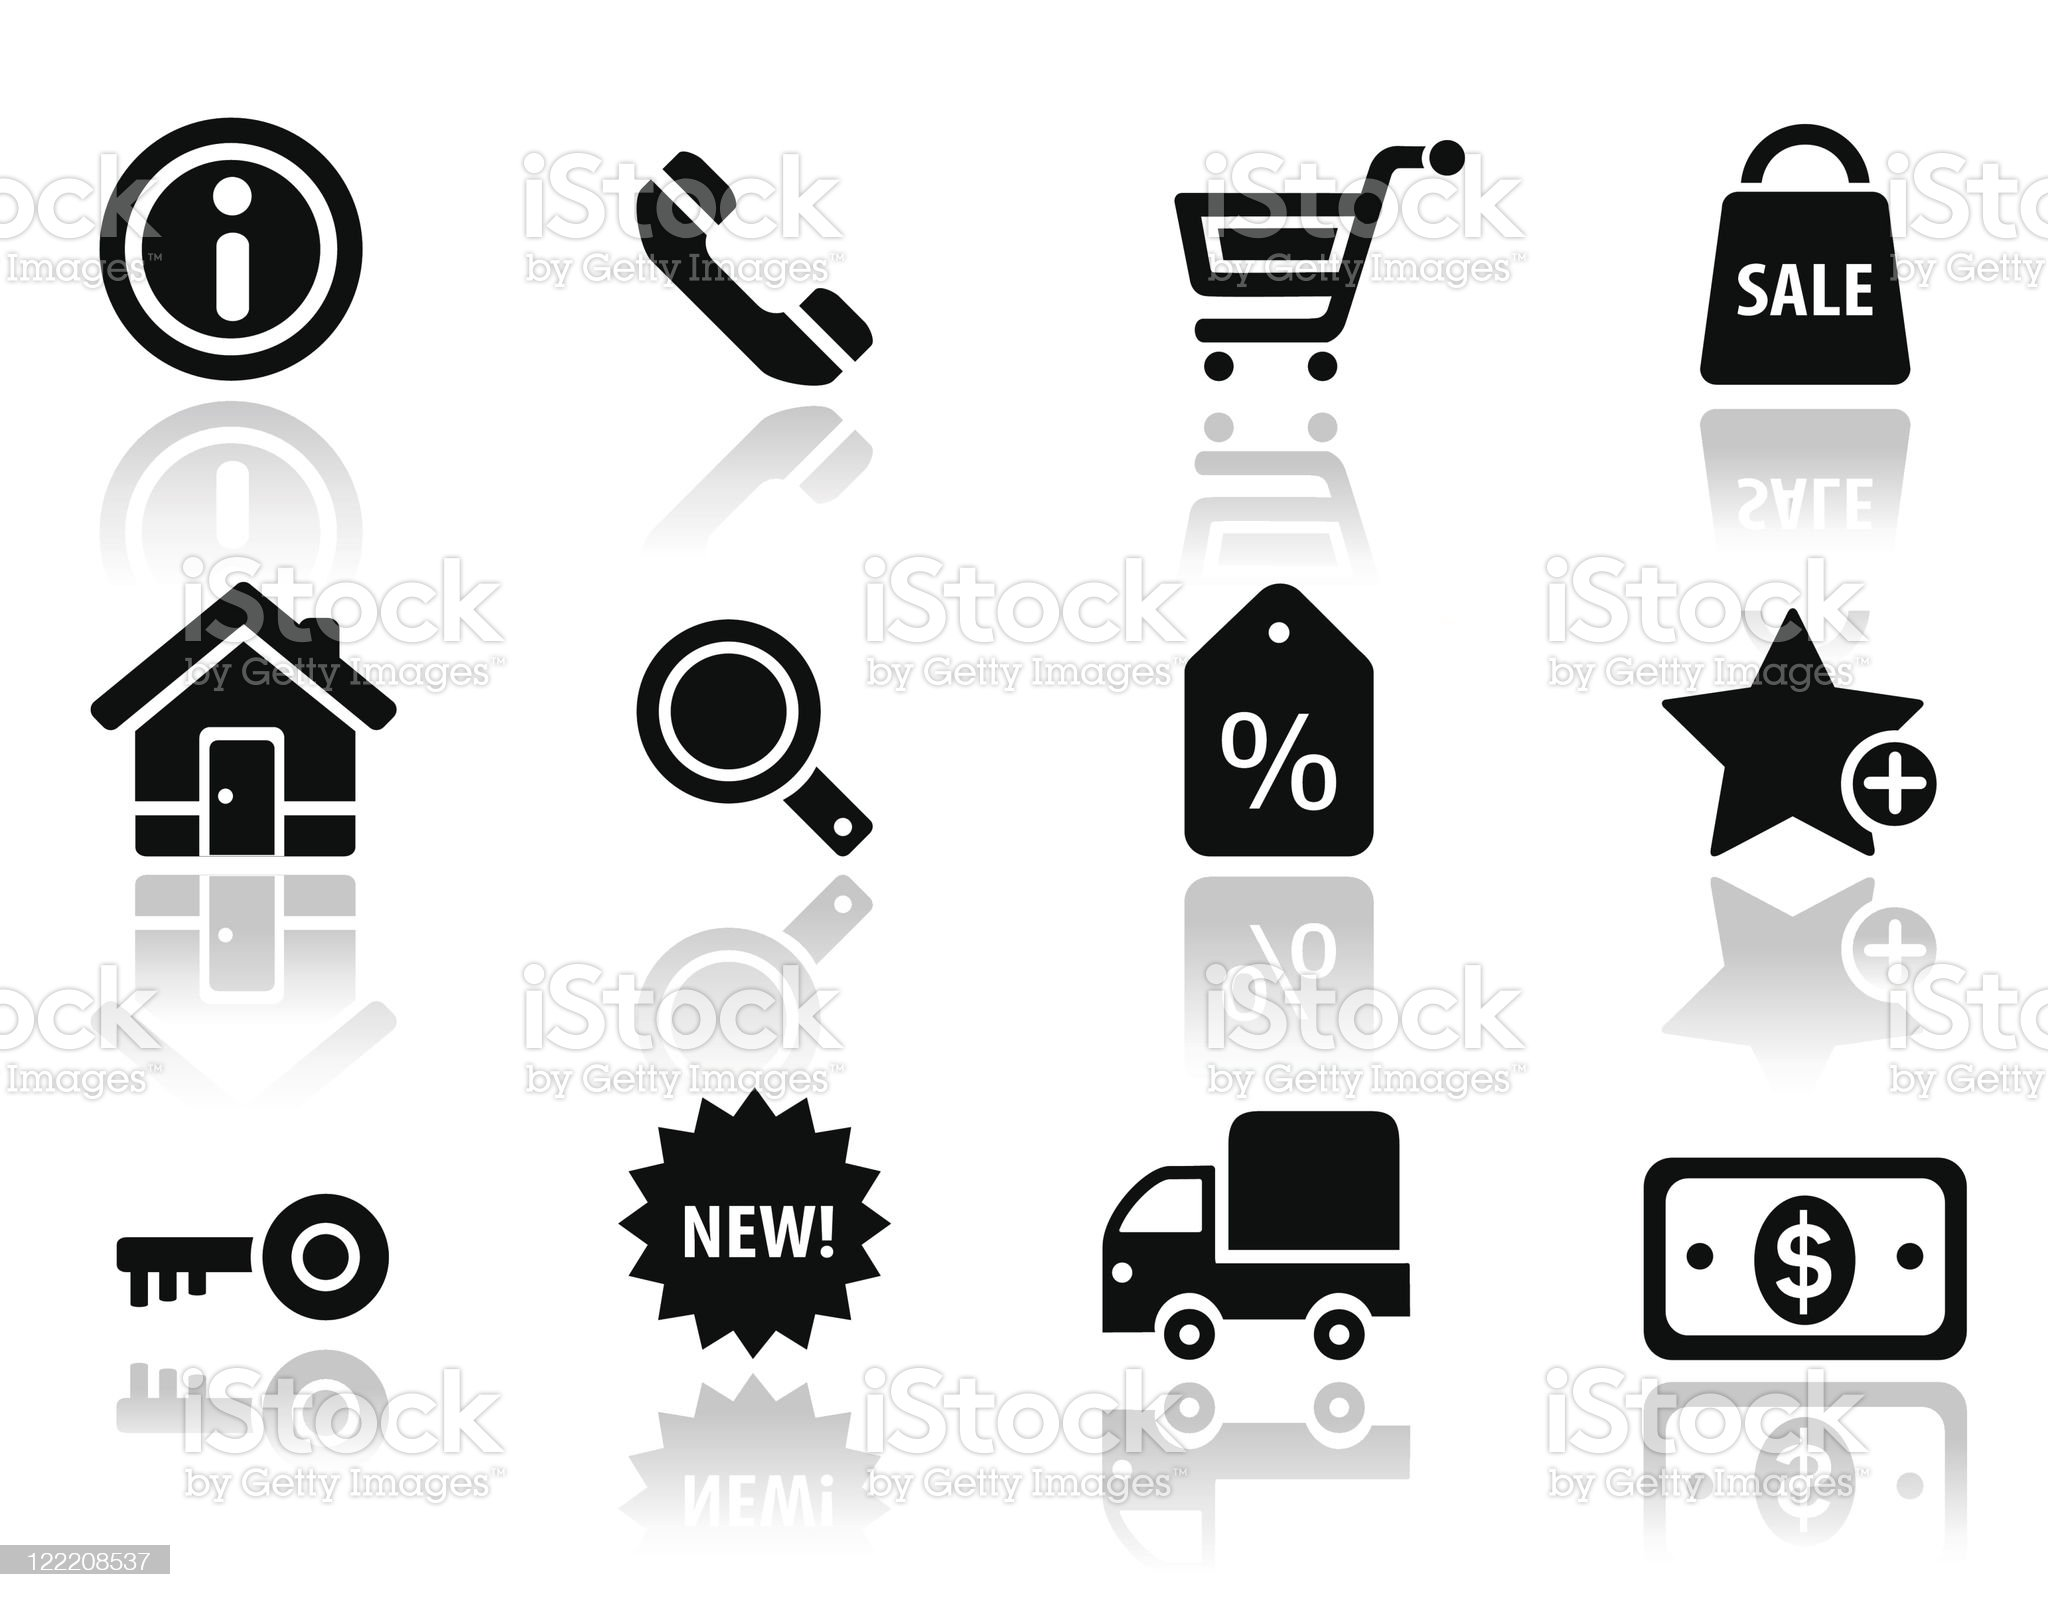 Shopping and commercial black icons royalty-free stock vector art